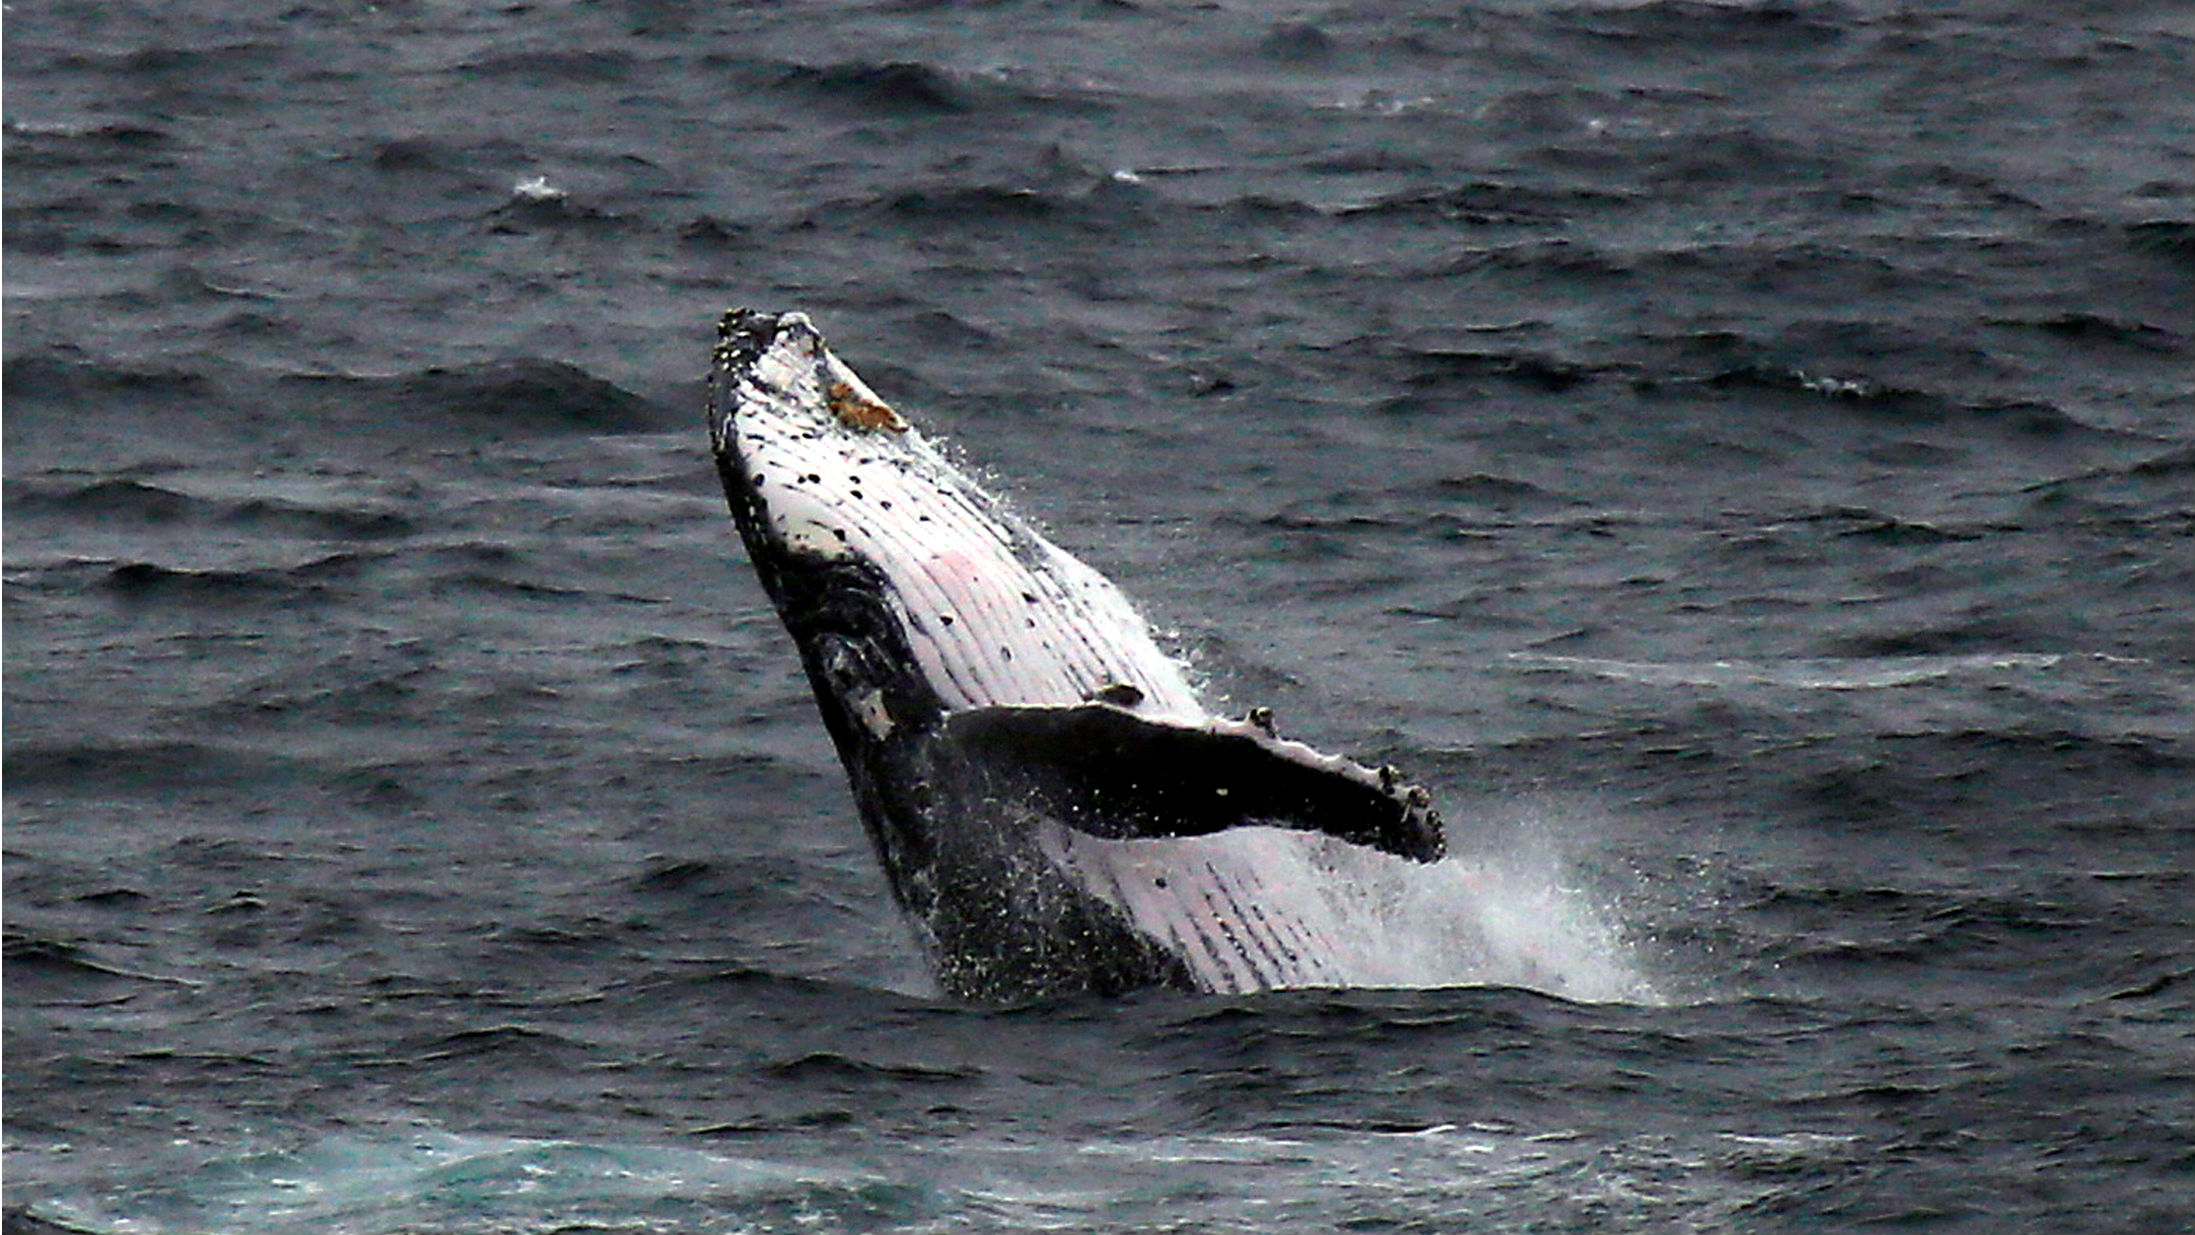 A humpback whale breaches off the coast at Clovelly Beach in Sydney, Australia, June 19, 2016.